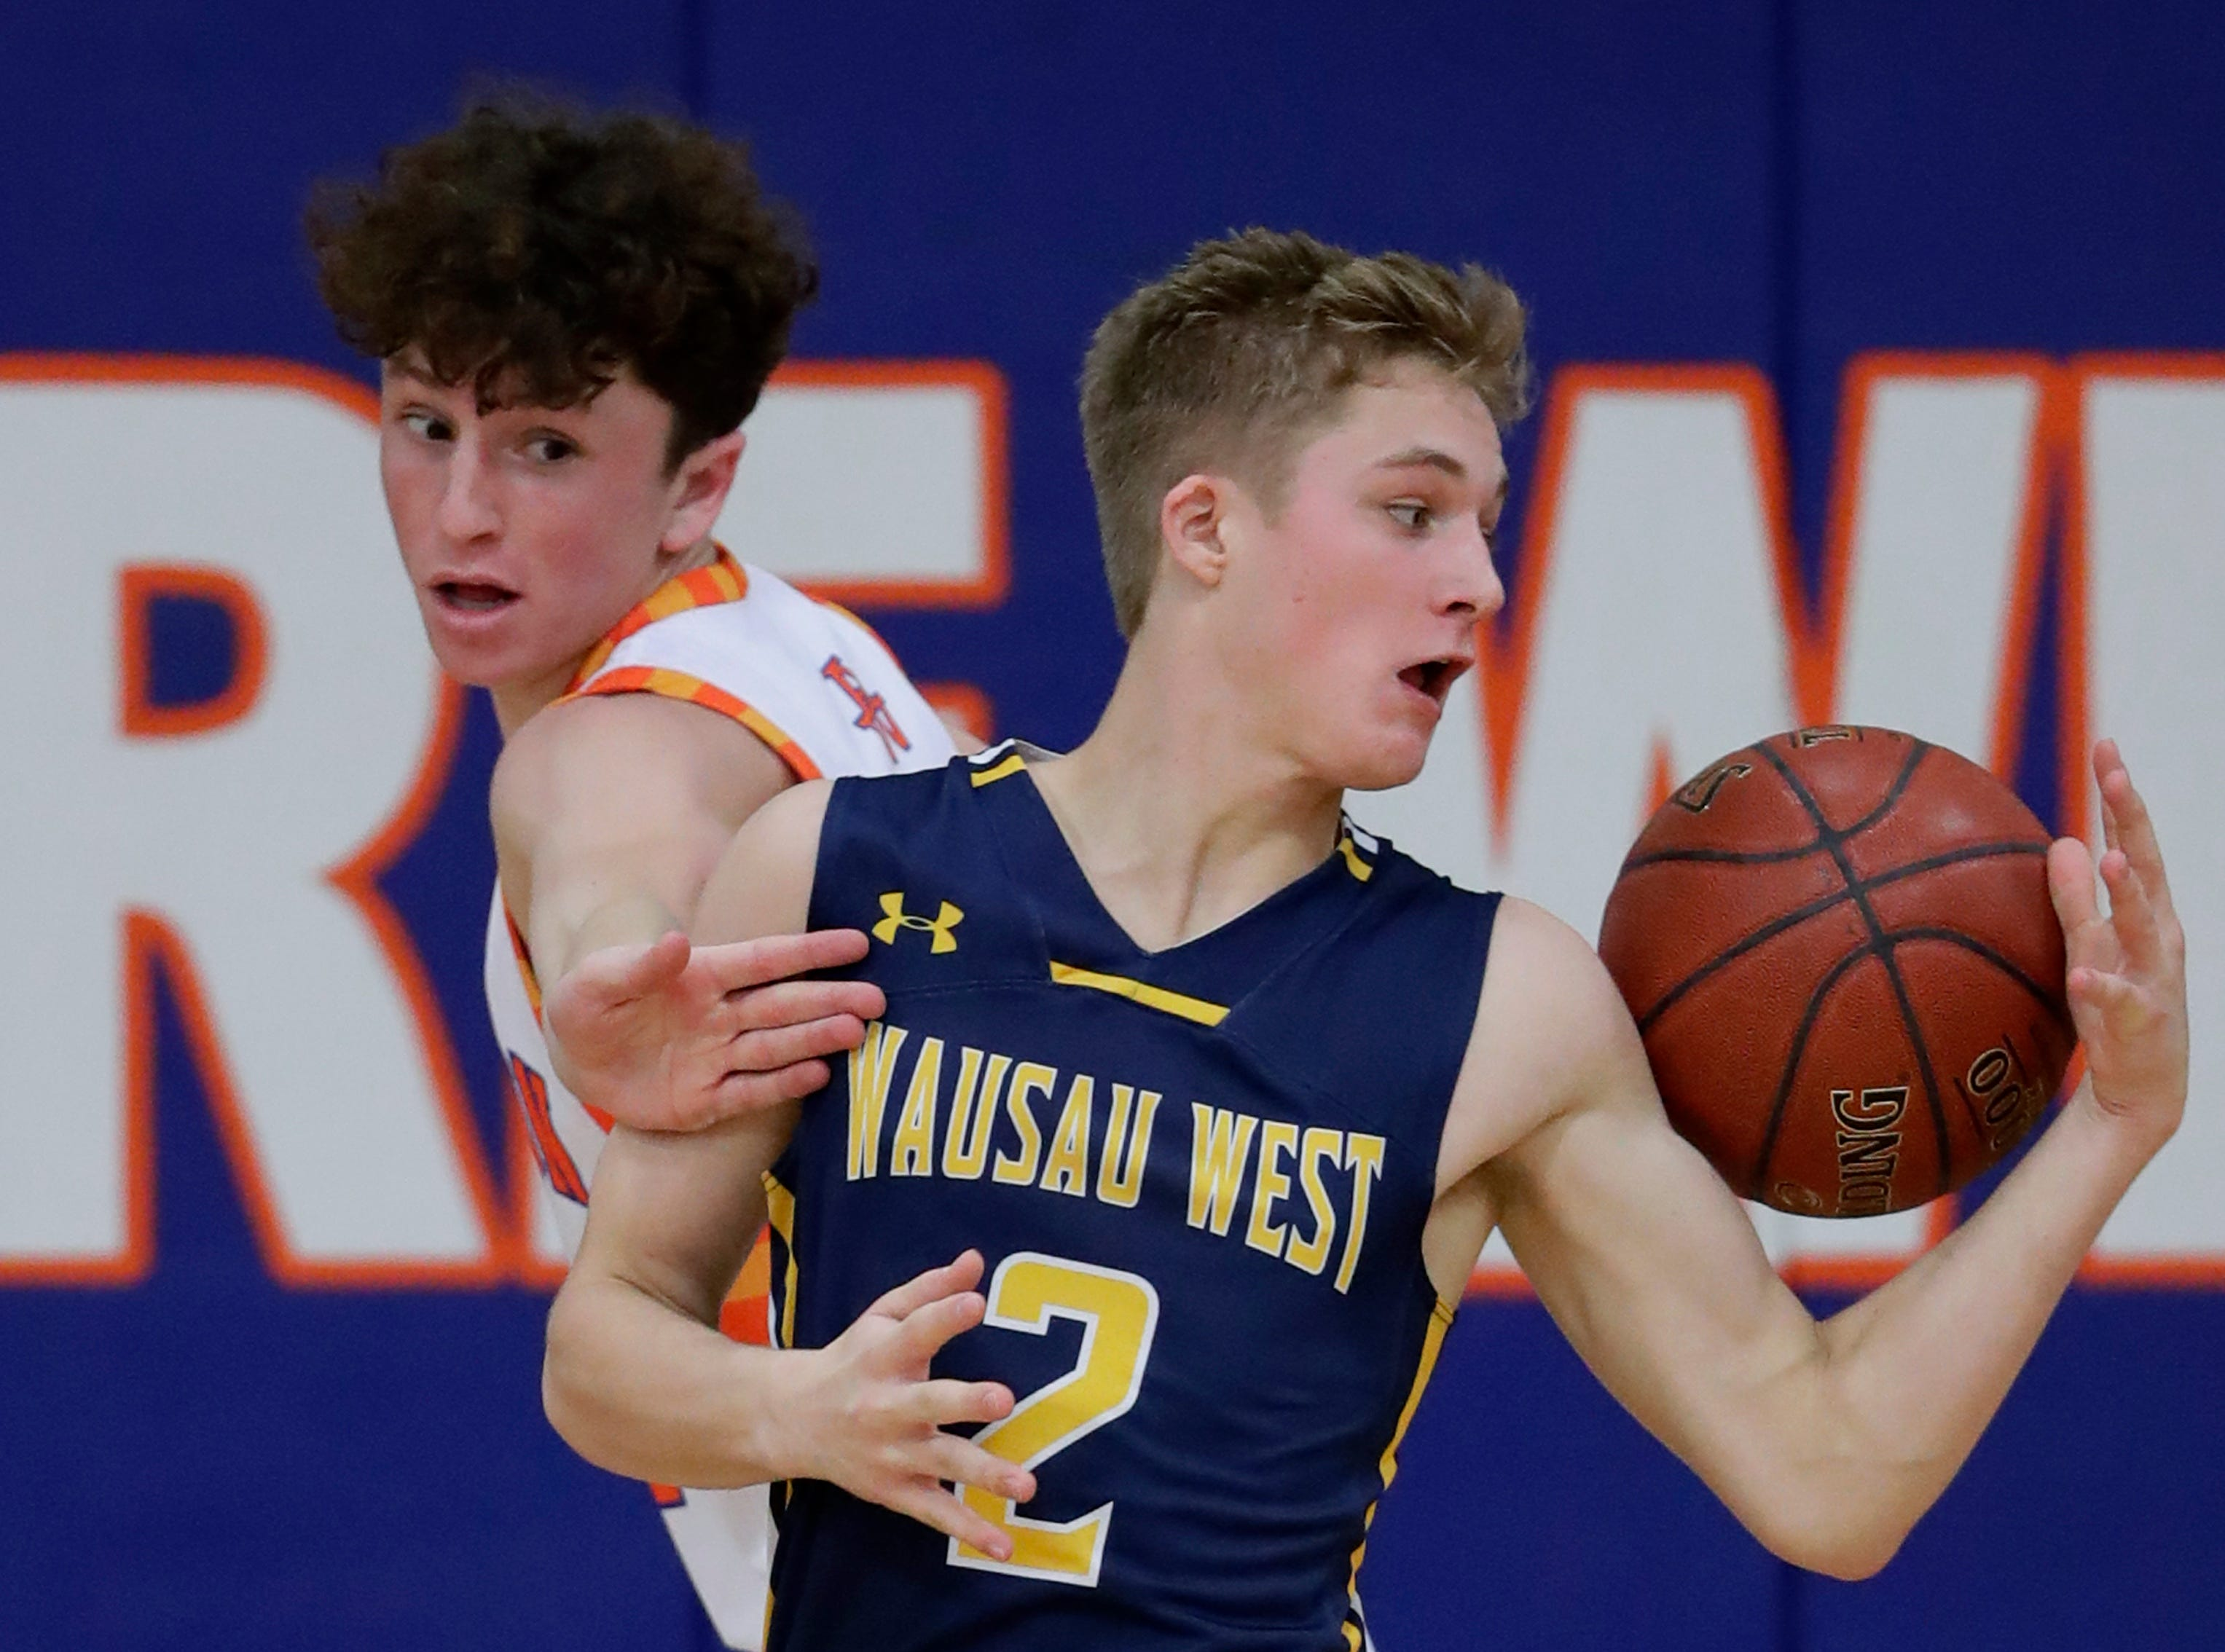 Appleton West  High School's Will Mahoney (21) defends against Wausau West High School's Mitchell Zahurones (2) during their boys basketball game Friday, December 28, 2018, in Appleton, Wis. 